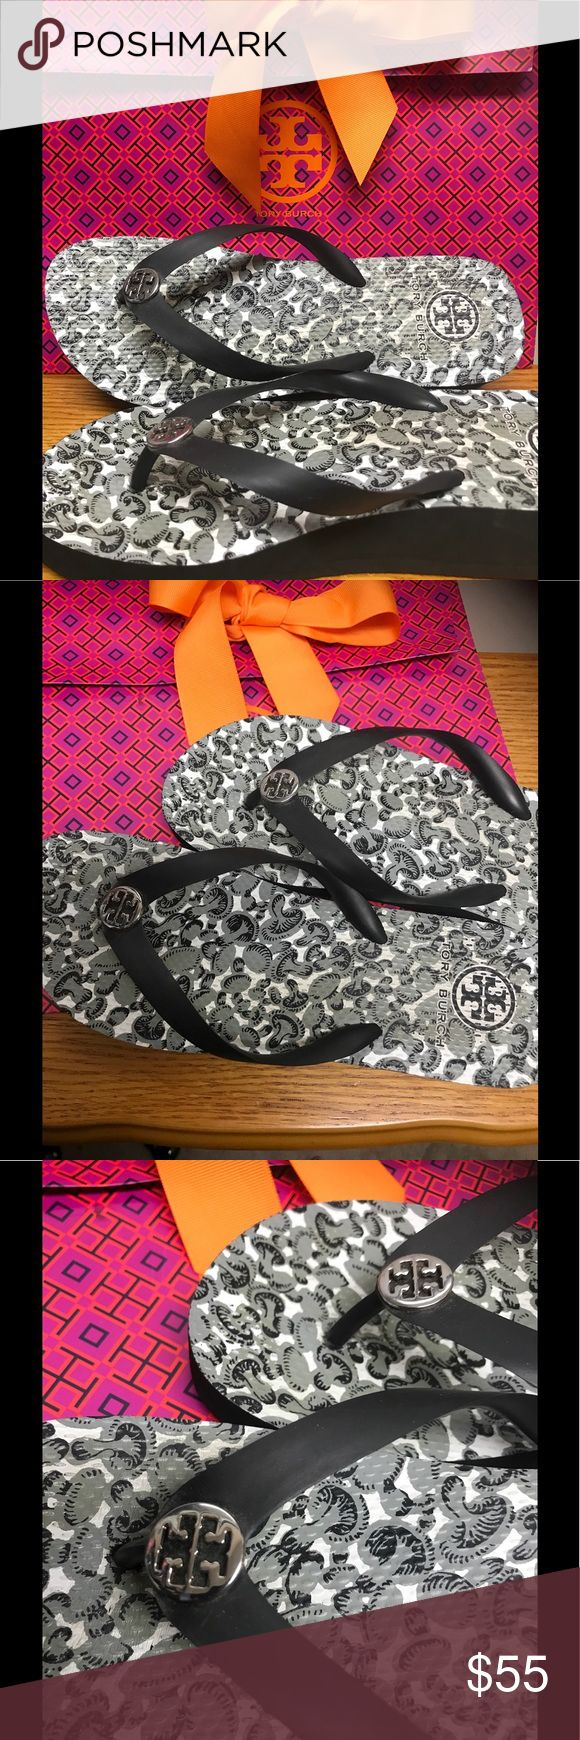 Tory Burch wedge flip flops. Black and white wedge flip flops.  Only worn a couple of times.  Bought another pair very similar.  Double T silver medallion. Tory Burch Shoes Sandals